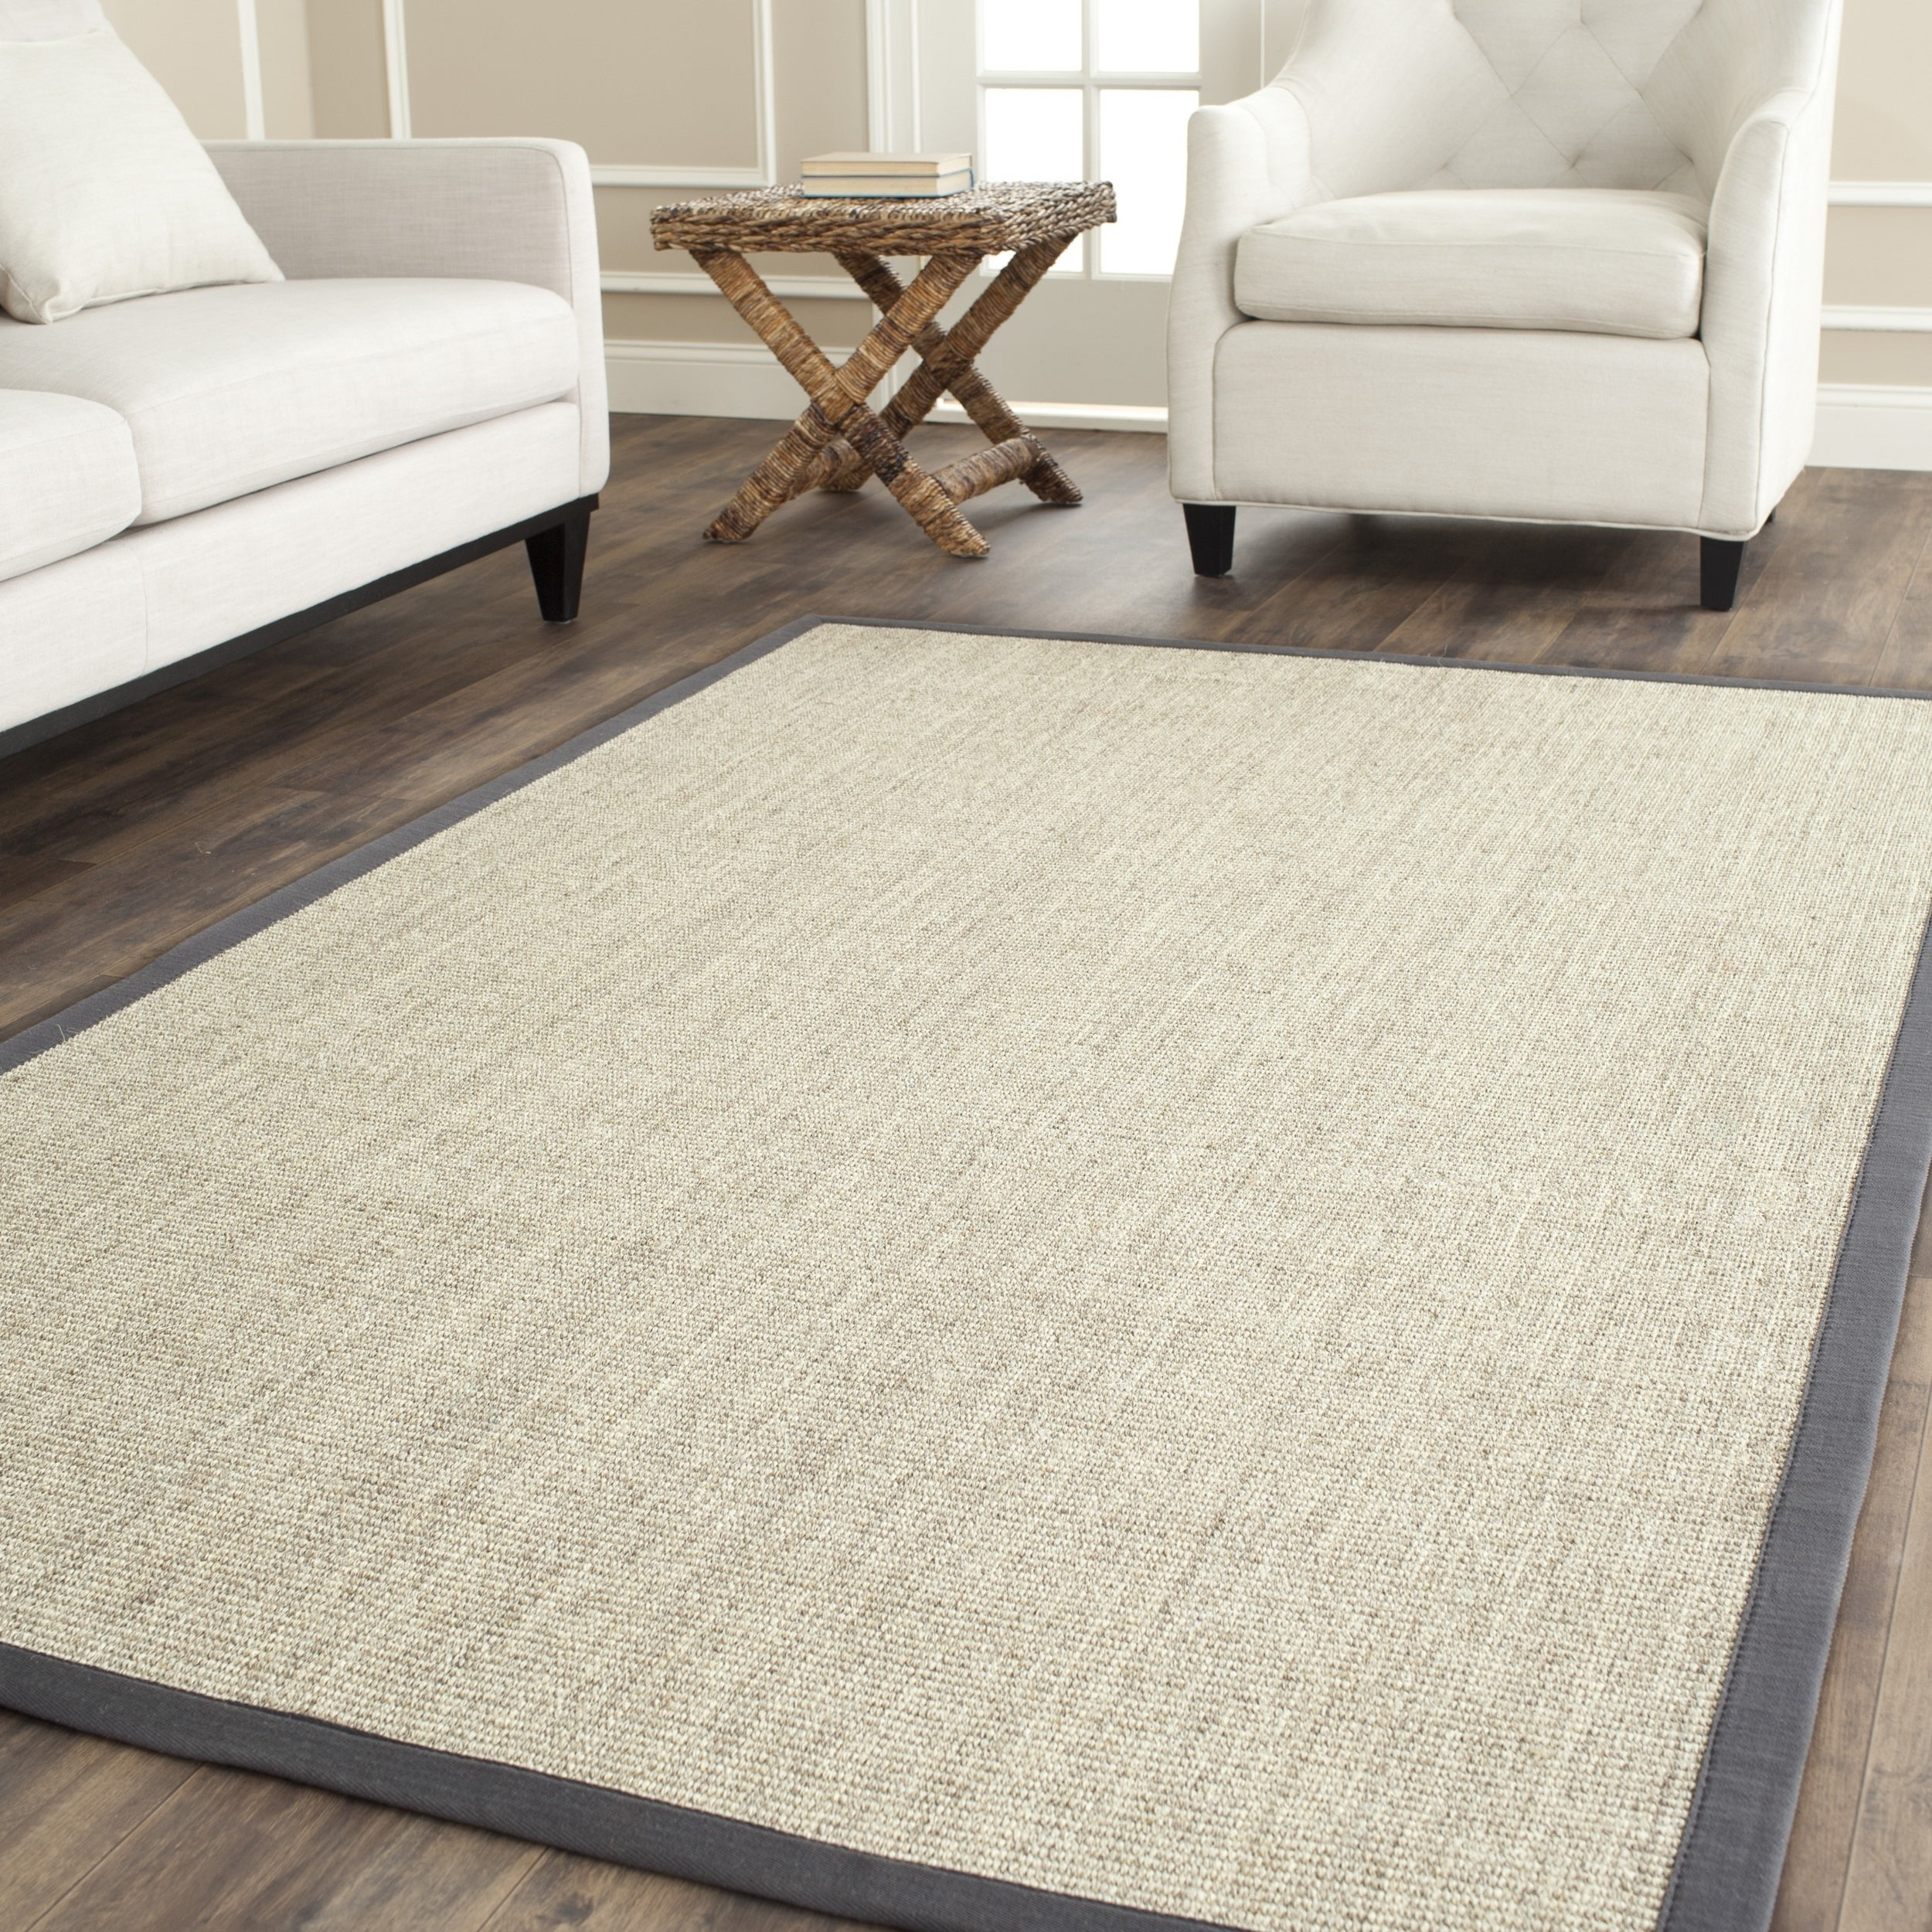 Cheap Sisal Rugs Two Birds Home